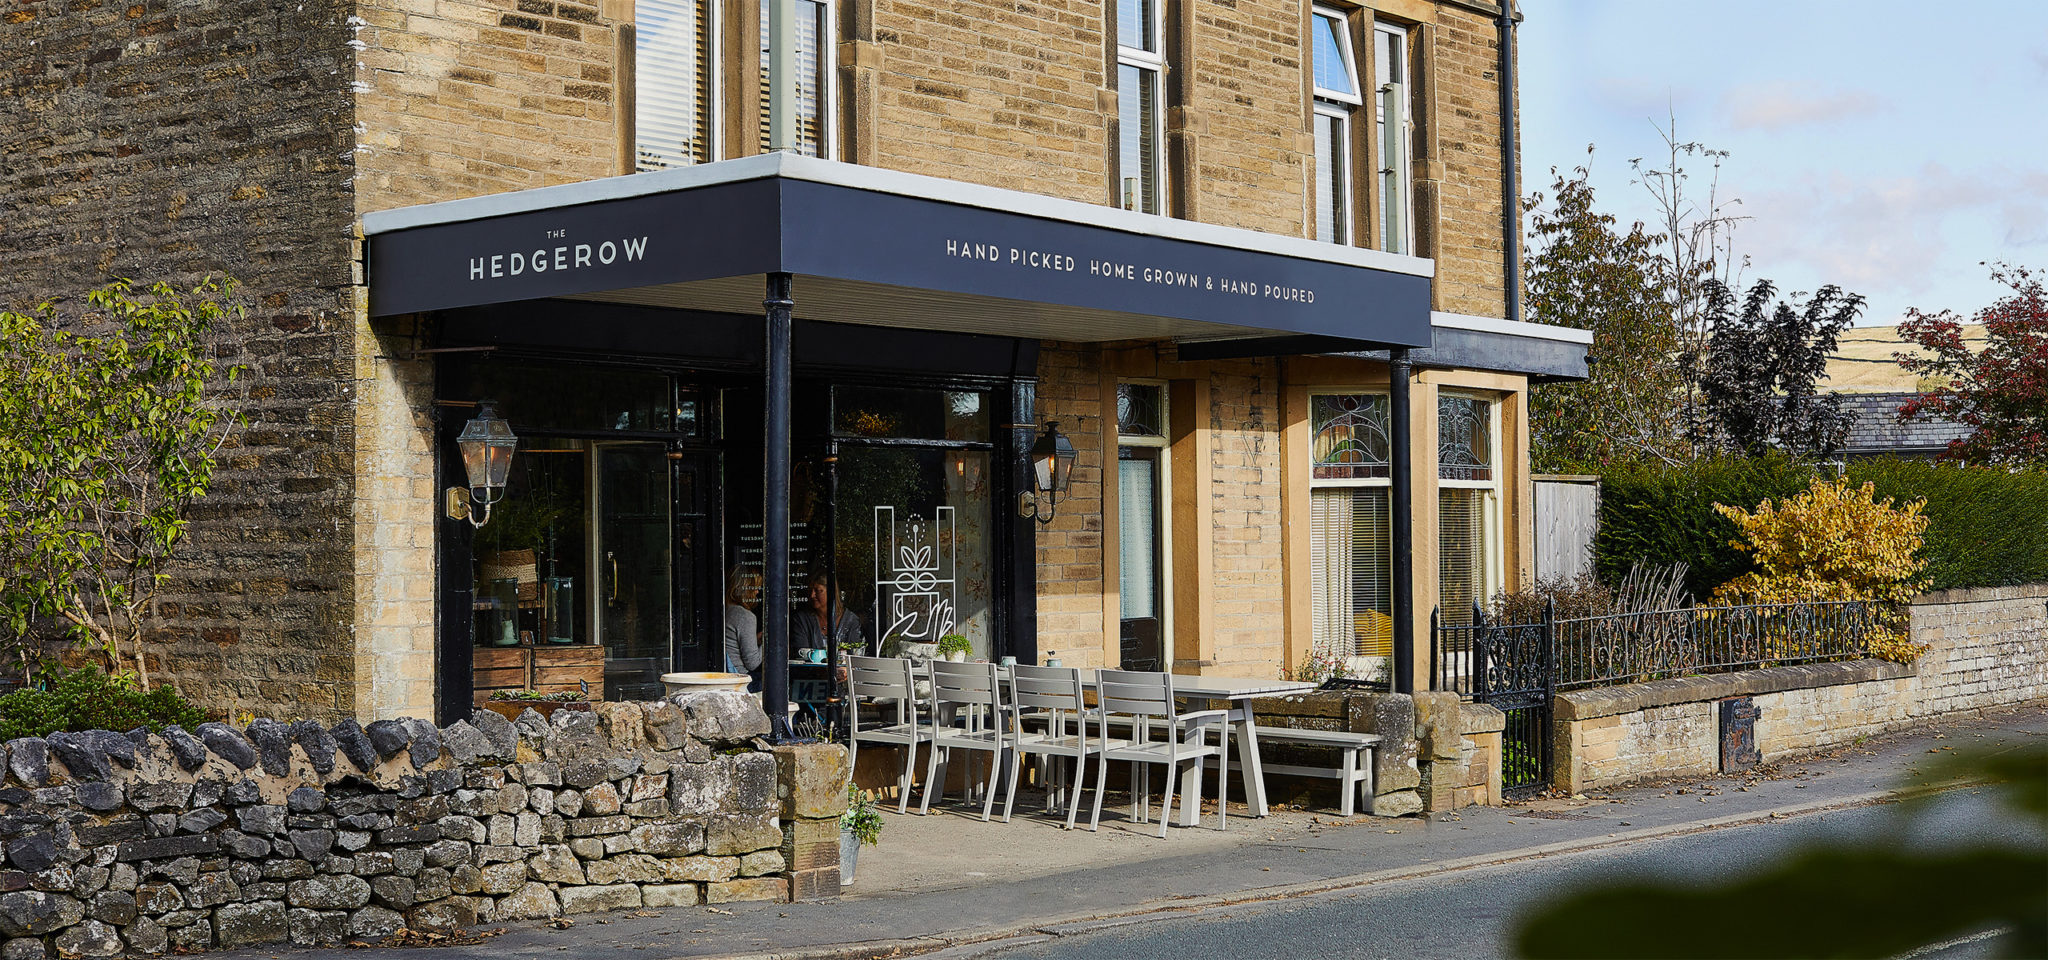 The Hedgerow Branding, Exterior Signage